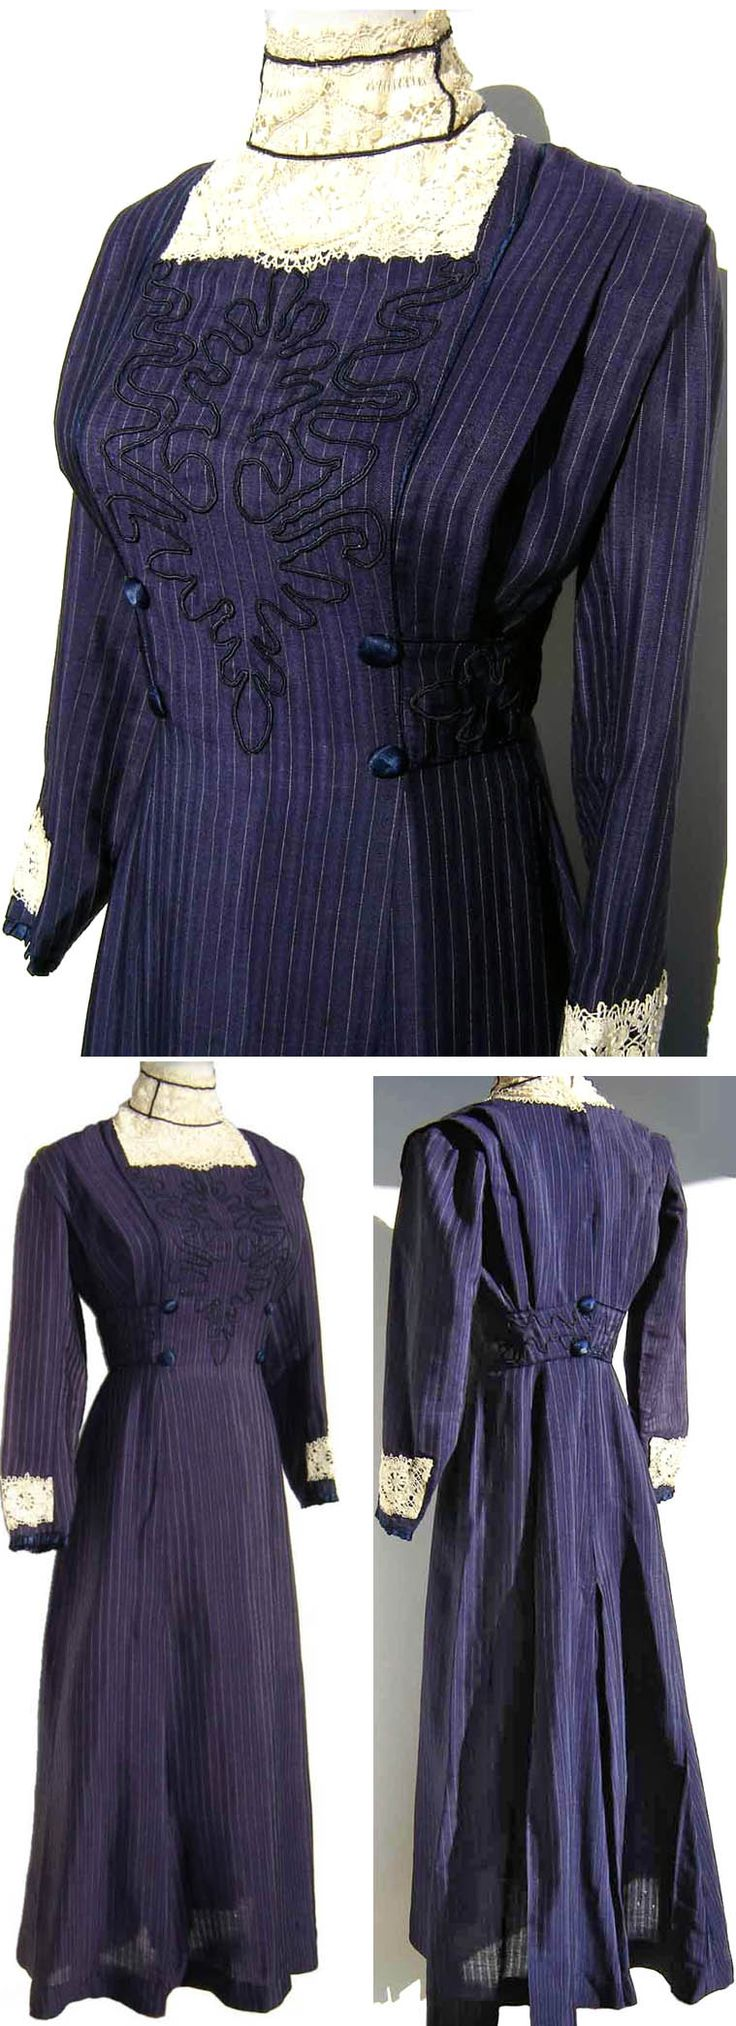 Day dress ca. 1910-13. Silk crepe (?), in navy blue with thin white vertical pinstripe. High neck with white cotton lace and blue piping, long sleeves with lace trim, fitted bodice with soutache on front, side pleats, silk-covered buttons, and A-line skirt. Hook & eye fasteners in back. metroretrovintage/ebay